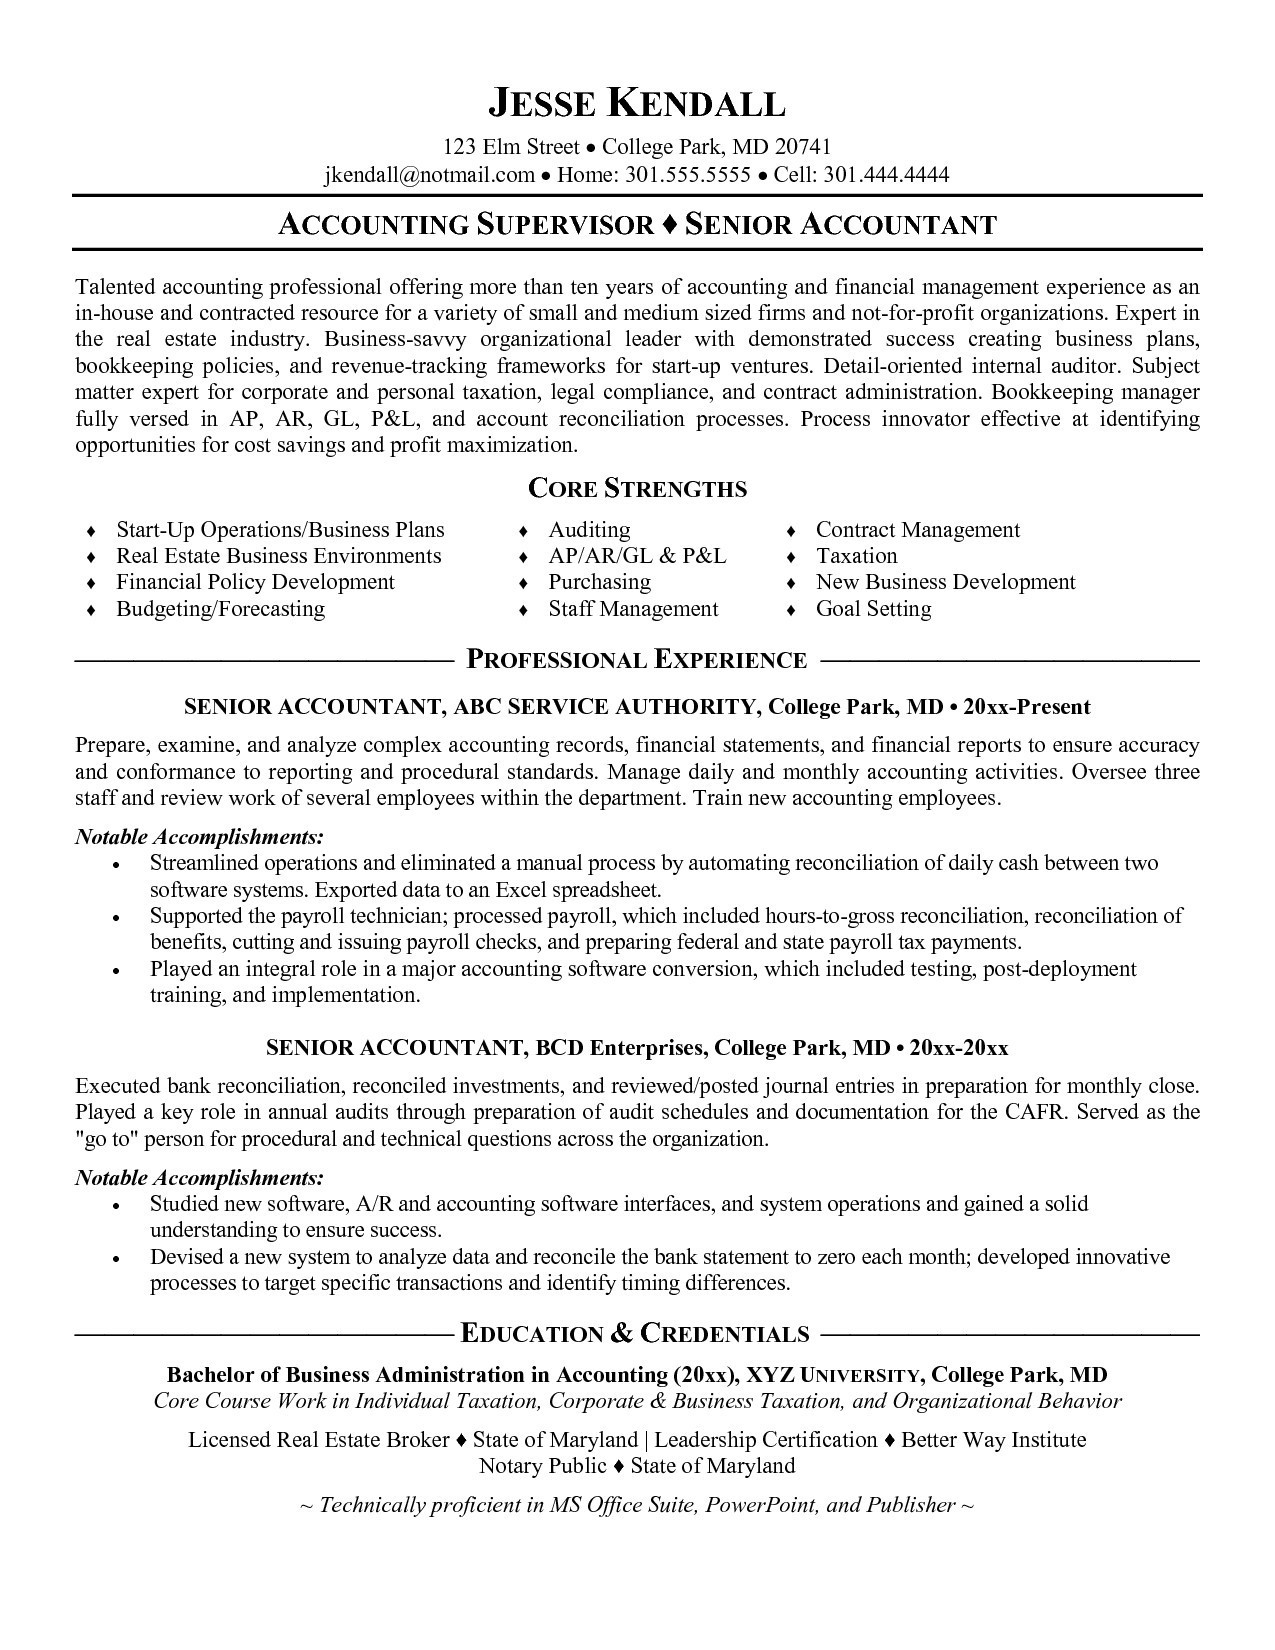 Real Estate Resumes - Pursuing Cpa Resume Luxury Senior Accountant Resume Awesome Empty